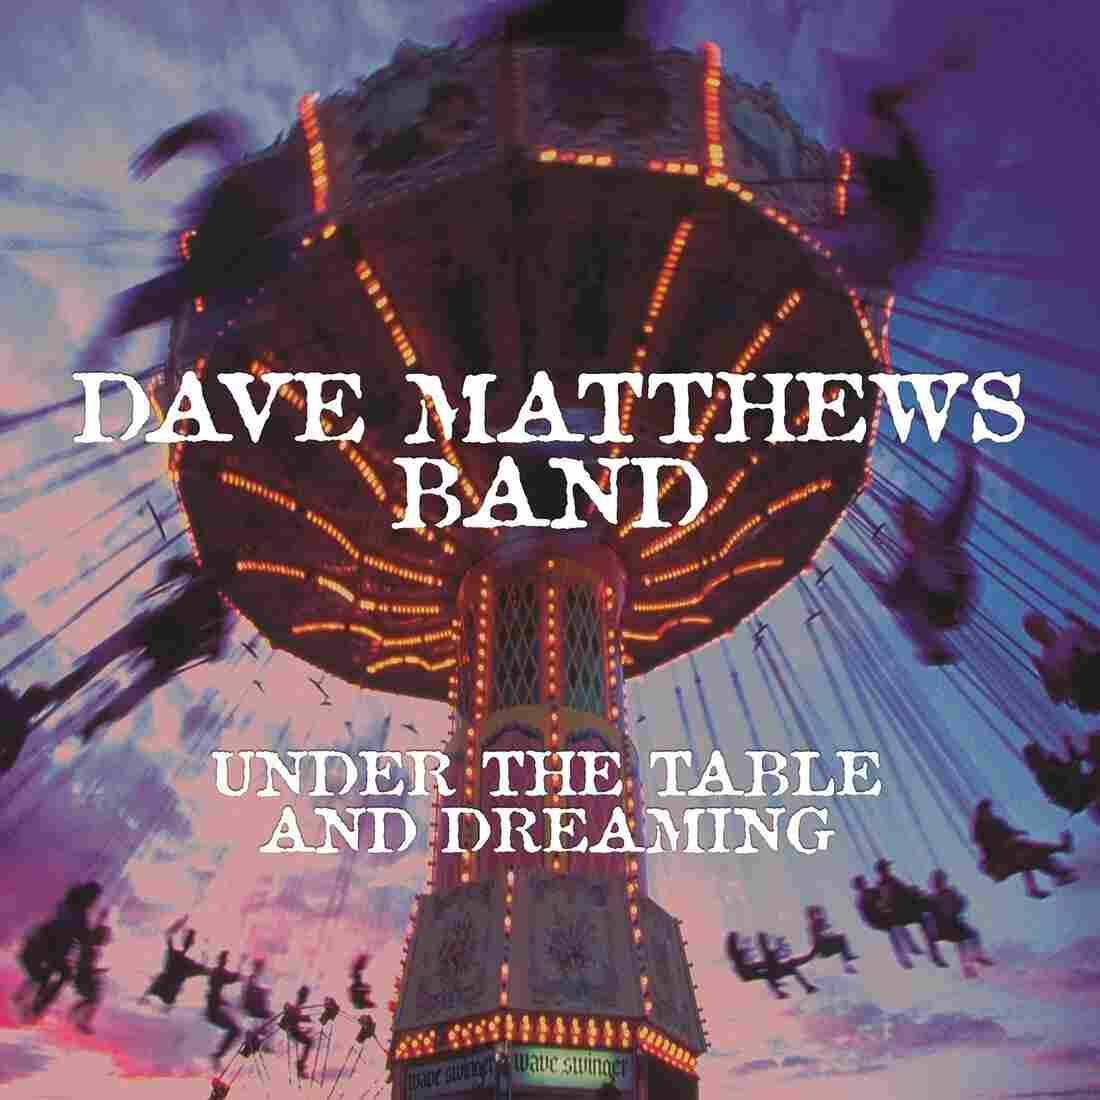 The Dave Matthews Band, Under The Table and Dreaming